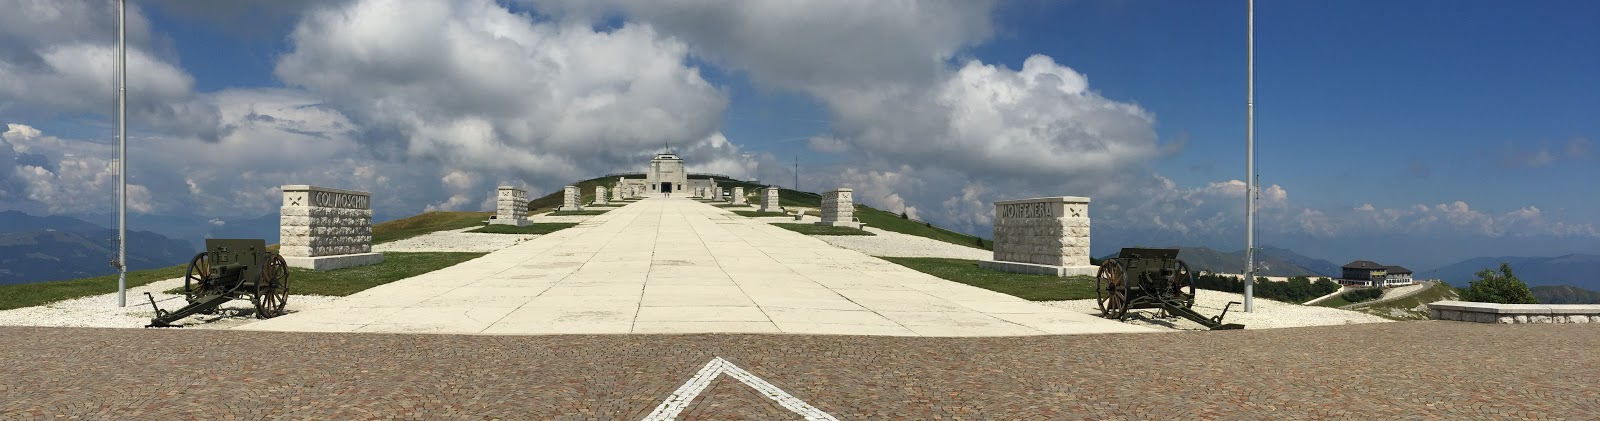 Cycling Monte Grappa from Possagno  - top of Sacrario del Monte Grappa, canons and walkway